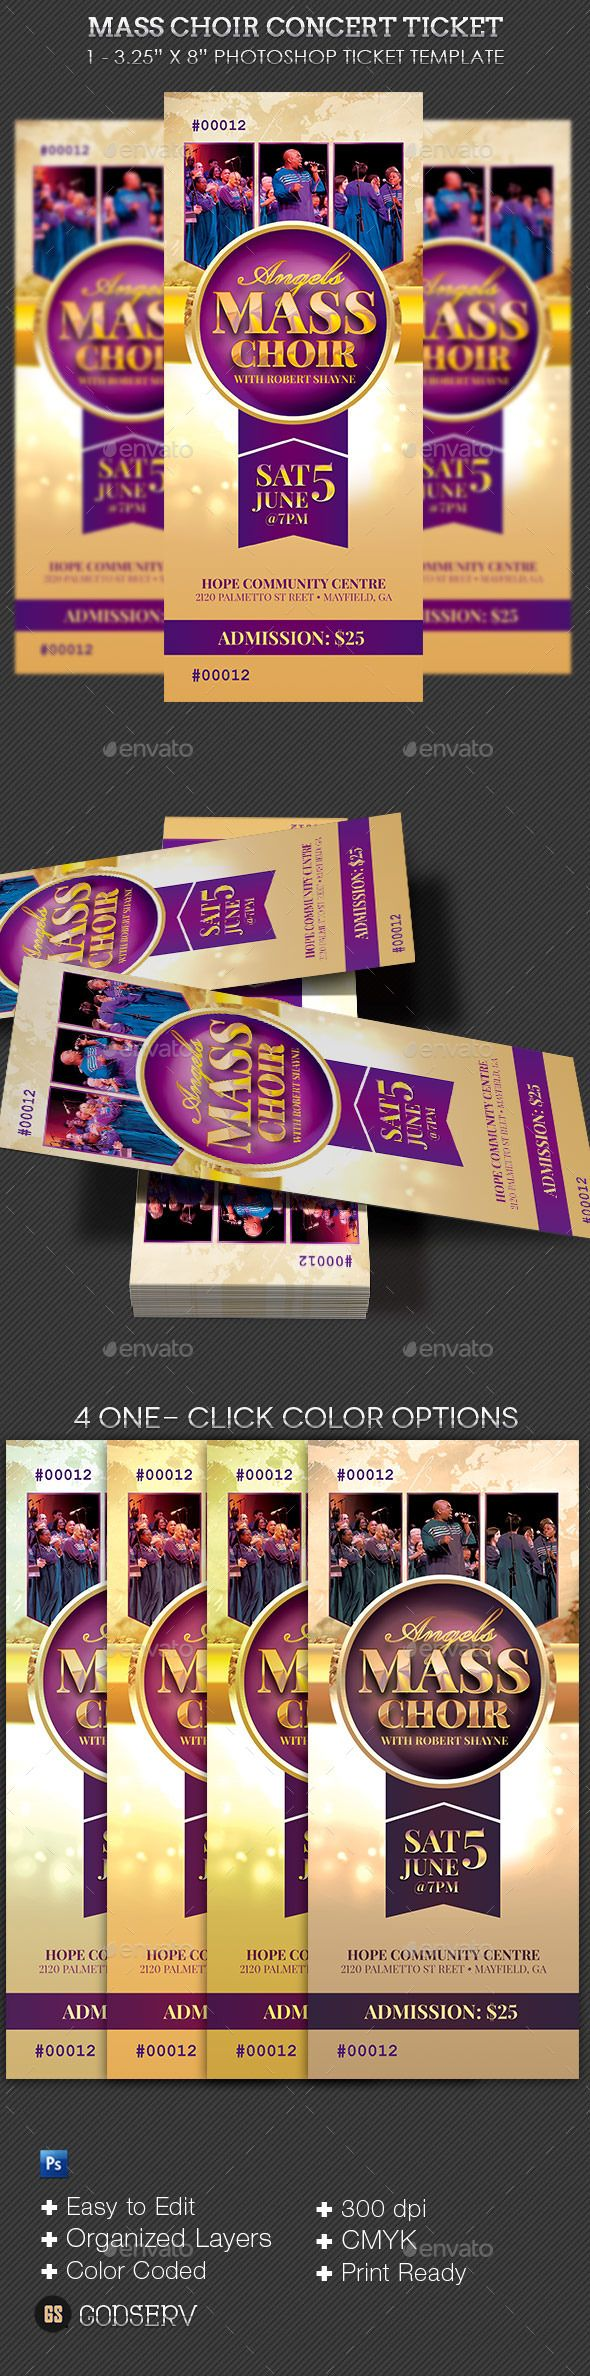 Make Your Own Concert Tickets Business Certificate Template  5b923908e63160f2cce643d82ae2bf80 Make Your Own Concert Ticketshtml  How To Make A Concert Ticket